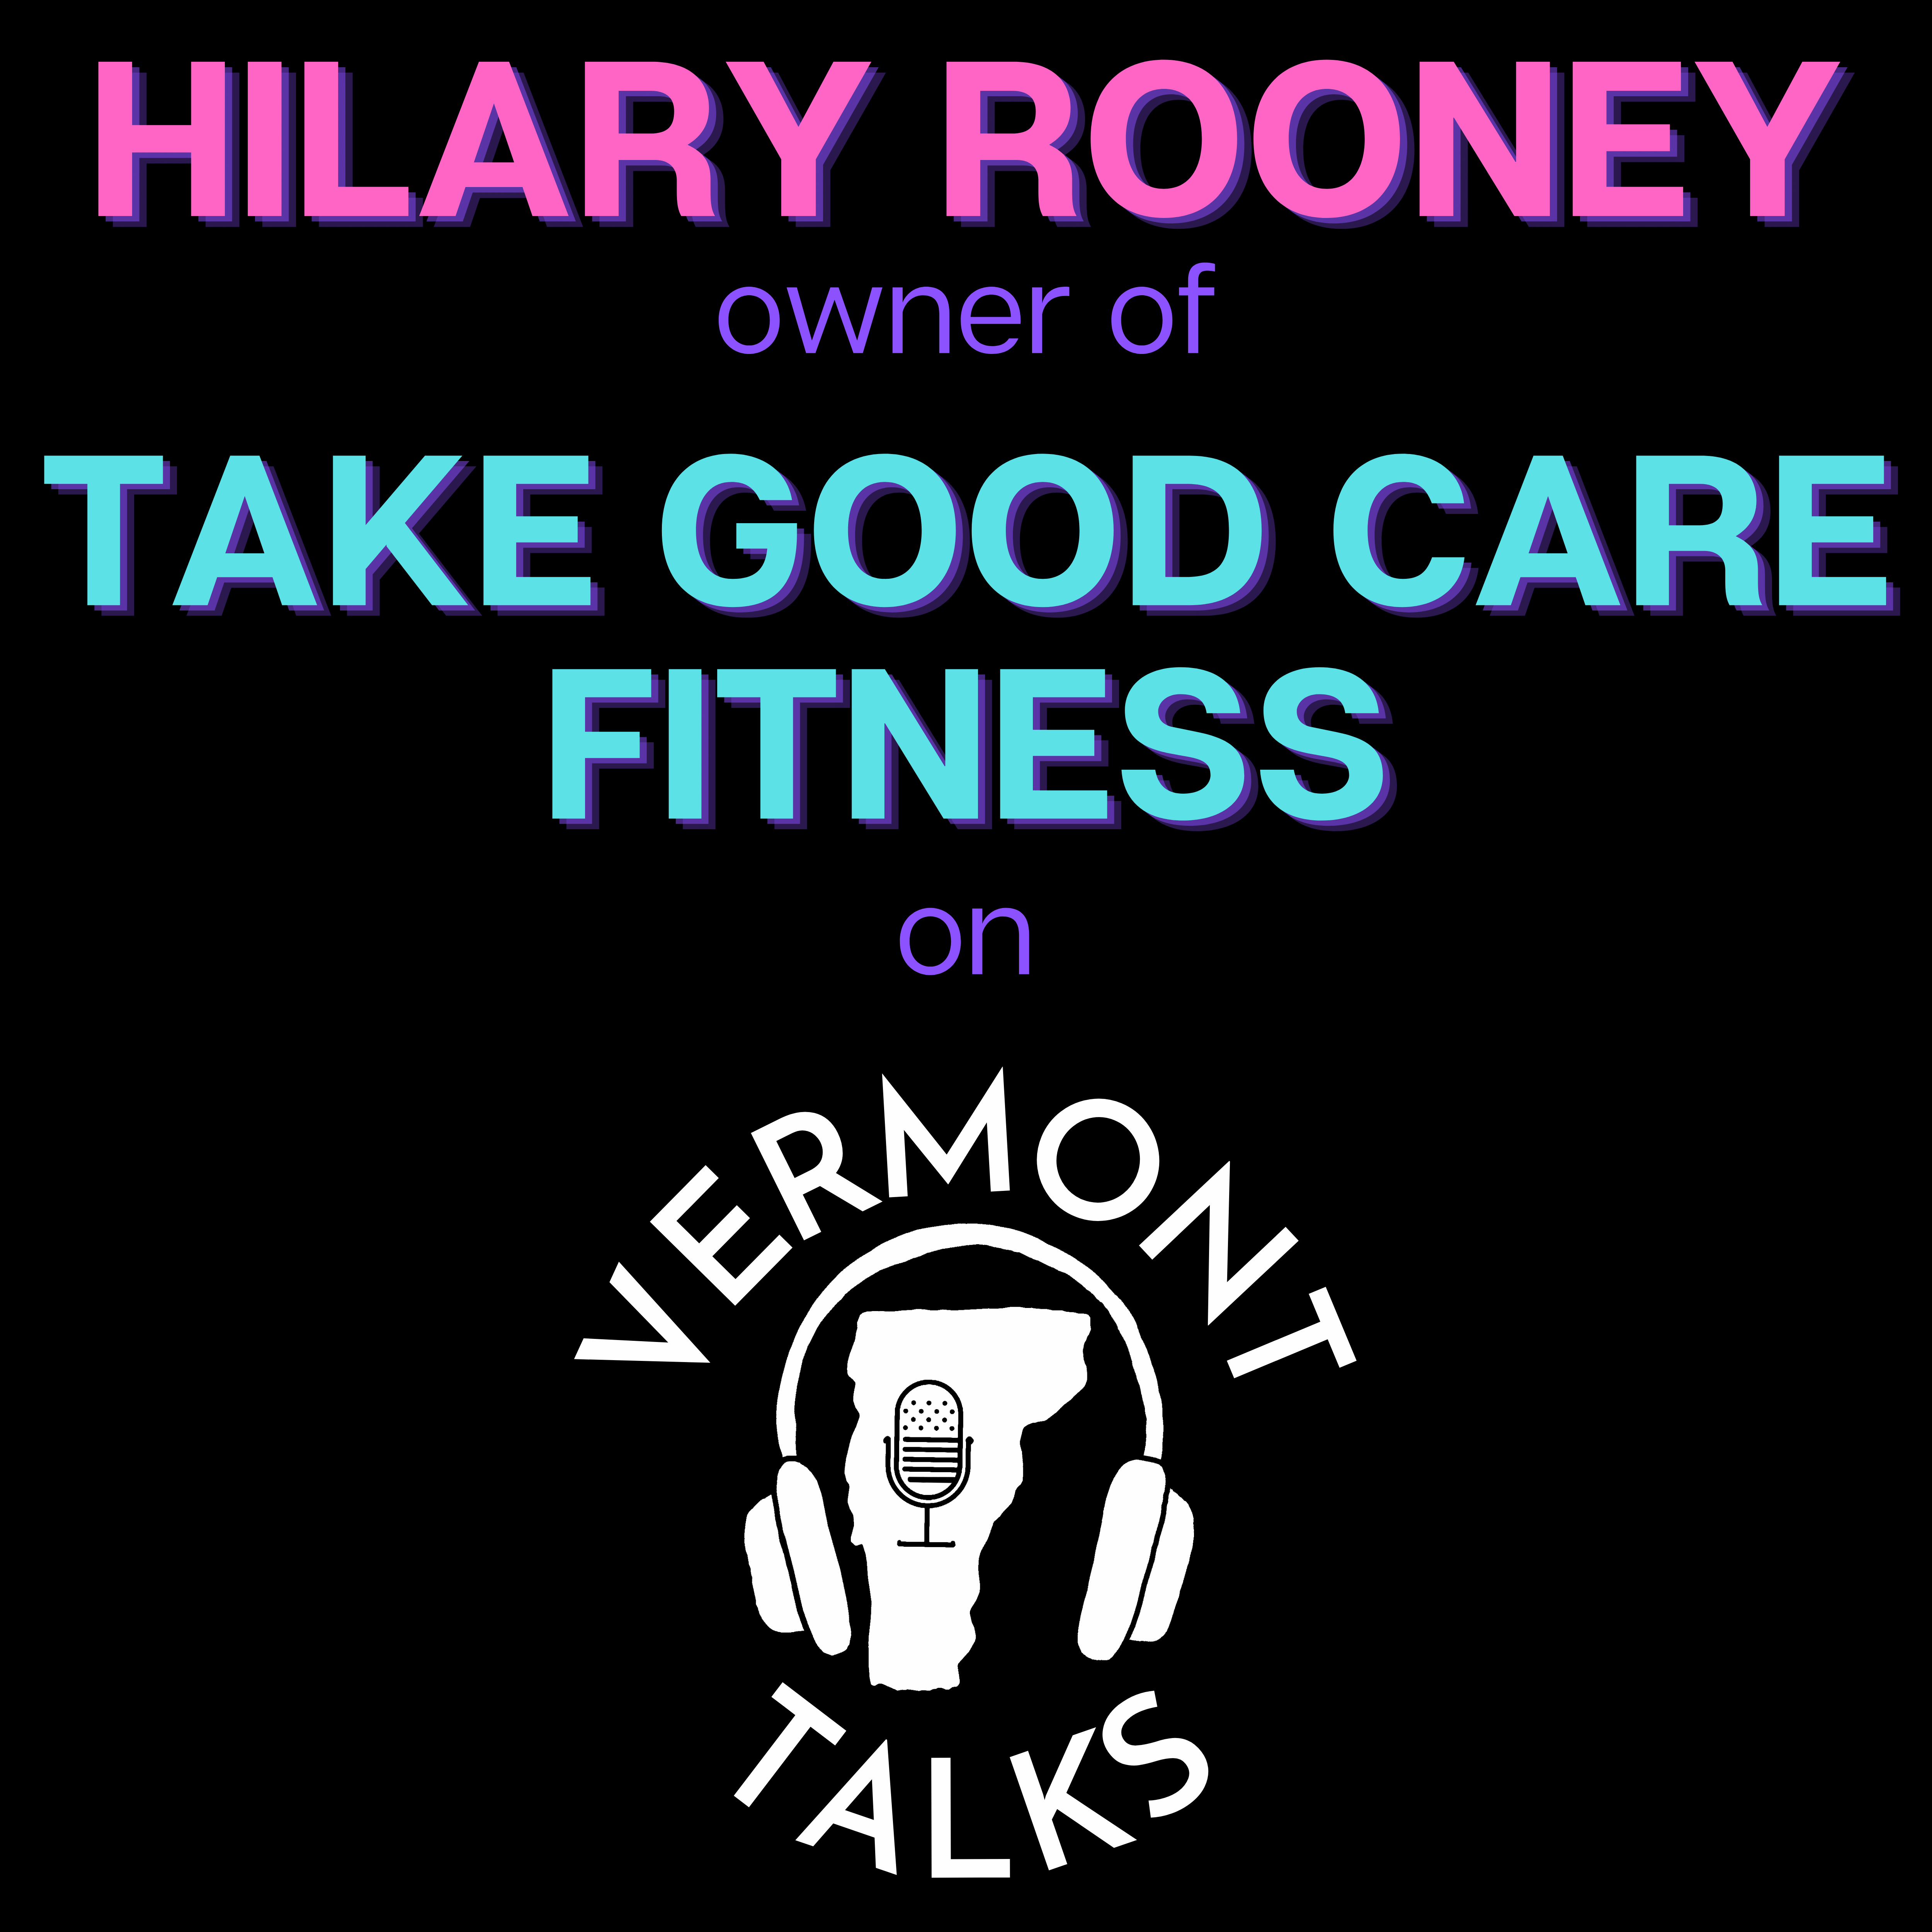 Hilary Rooney of Take Good Care Fitness